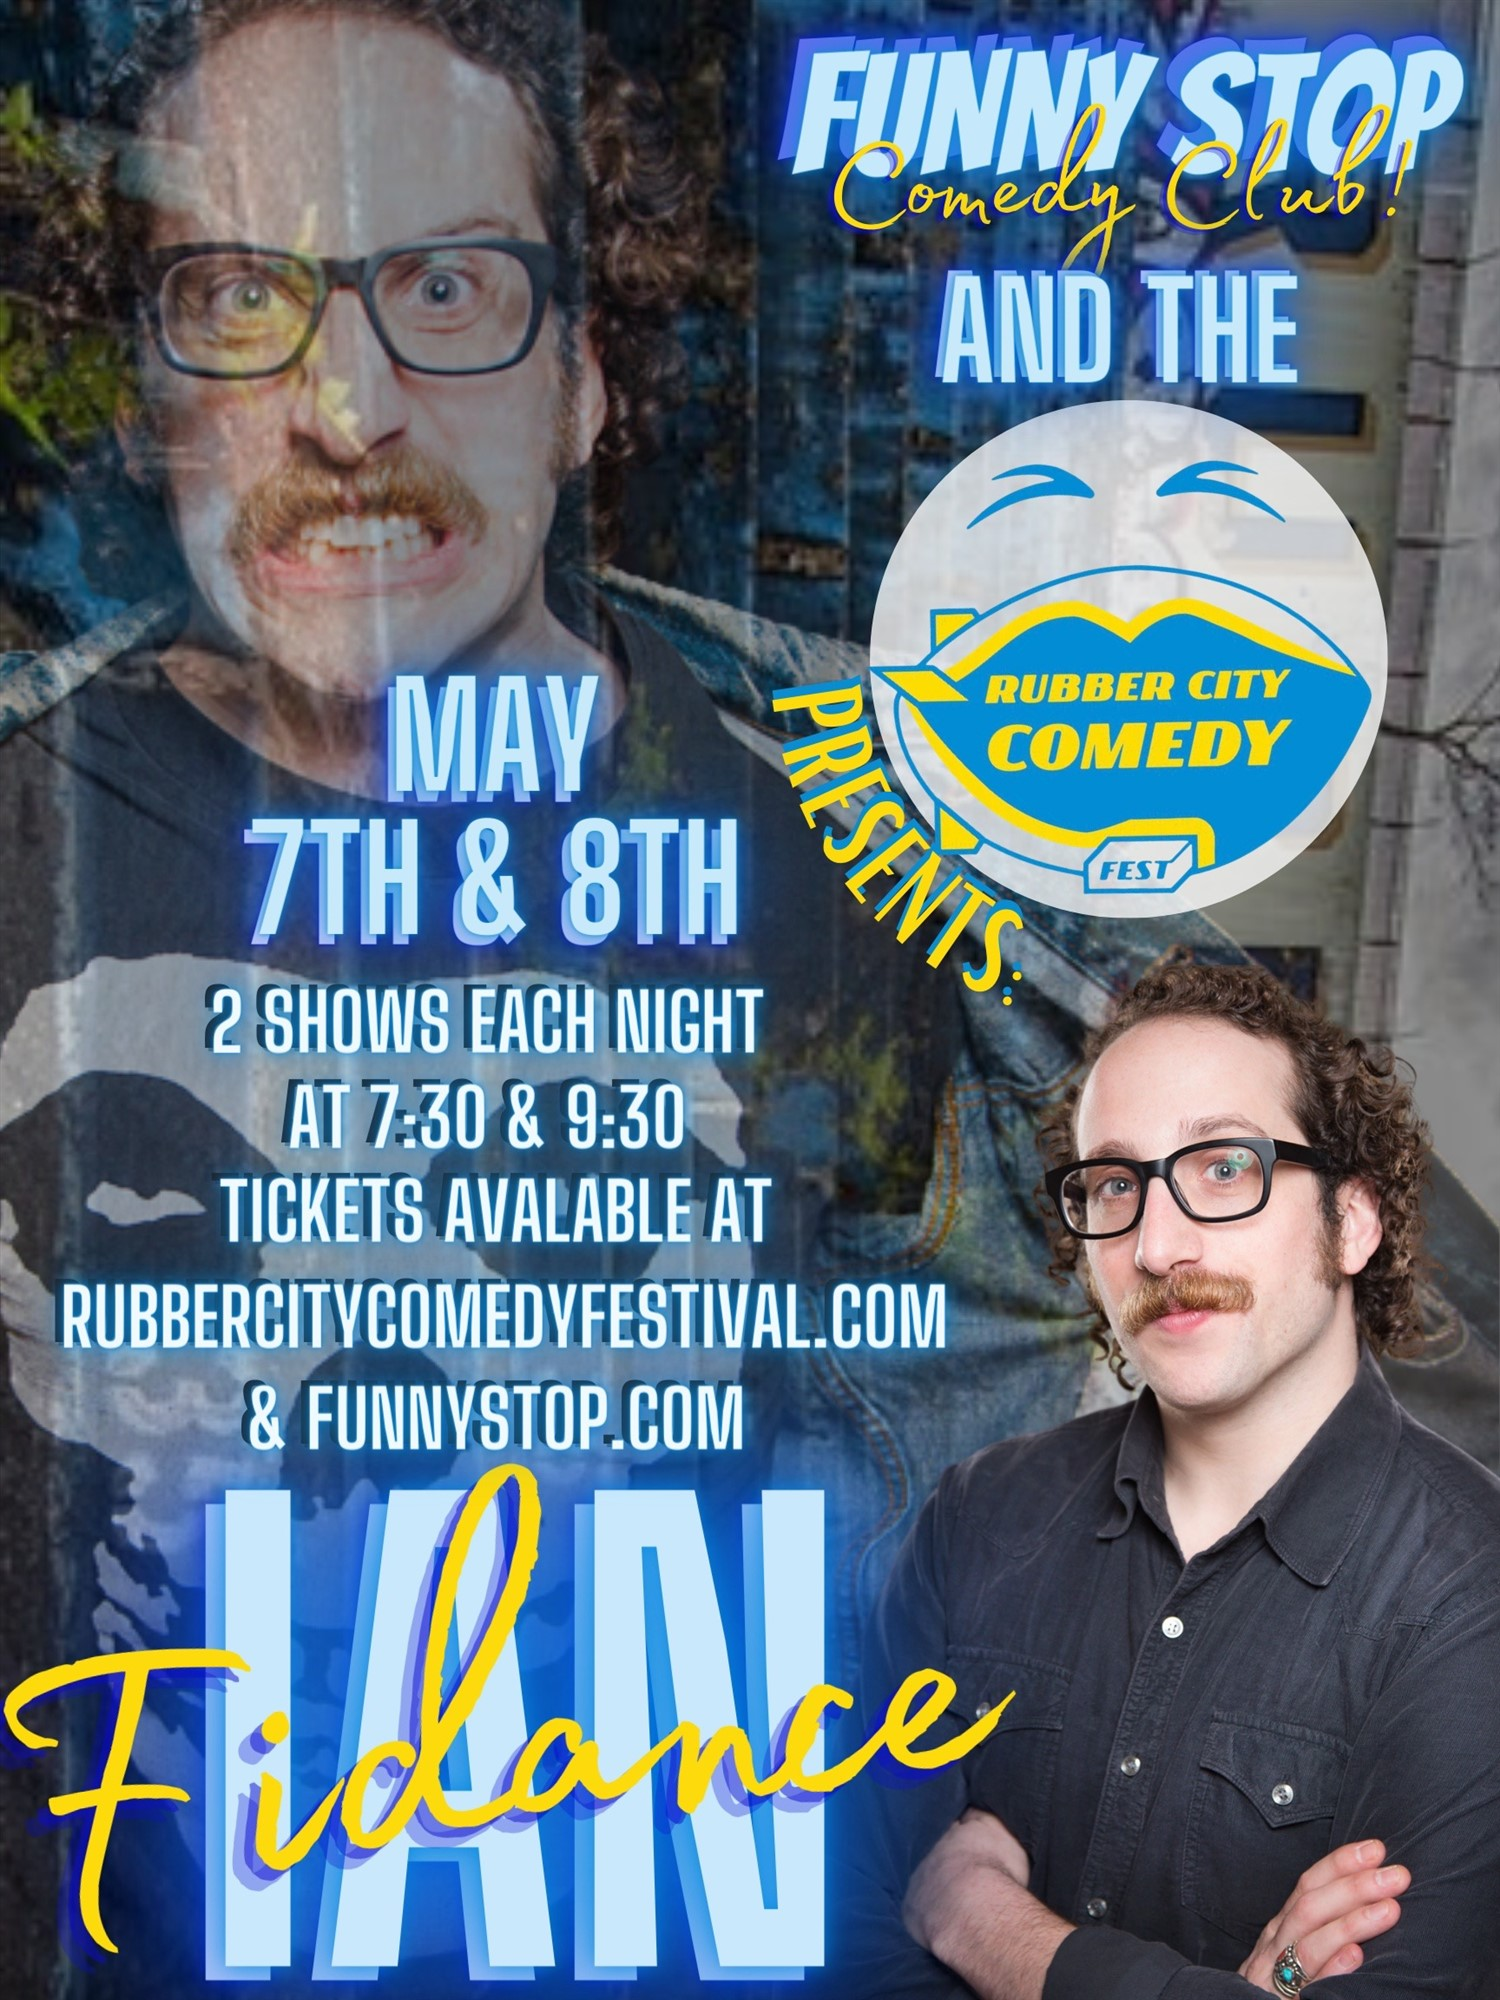 Ian Fidance 7:30 Show Rubber City Comedy Festival on May 07, 19:30@Funny Stop Comedy Club - Buy tickets and Get information on Funny Stop funnystop.online